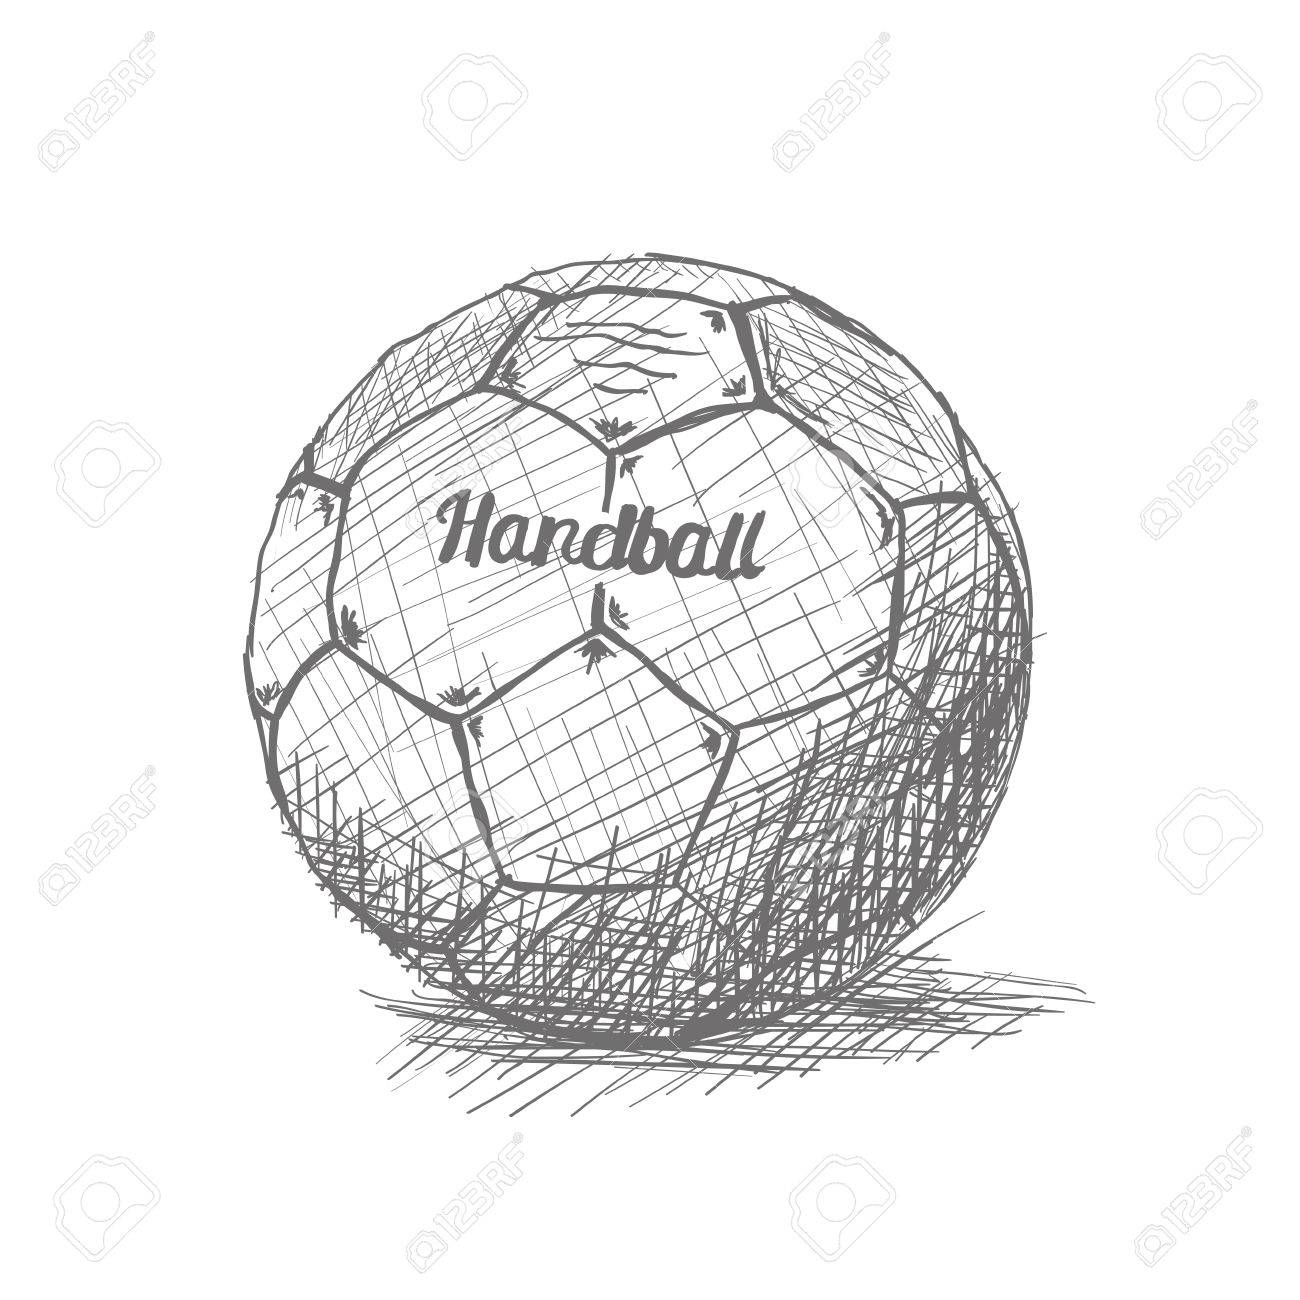 Isolated Sketch Of A Handball Ball On A White Background Royalty Free Cliparts Vectors And Stock Illustration Image 54185225